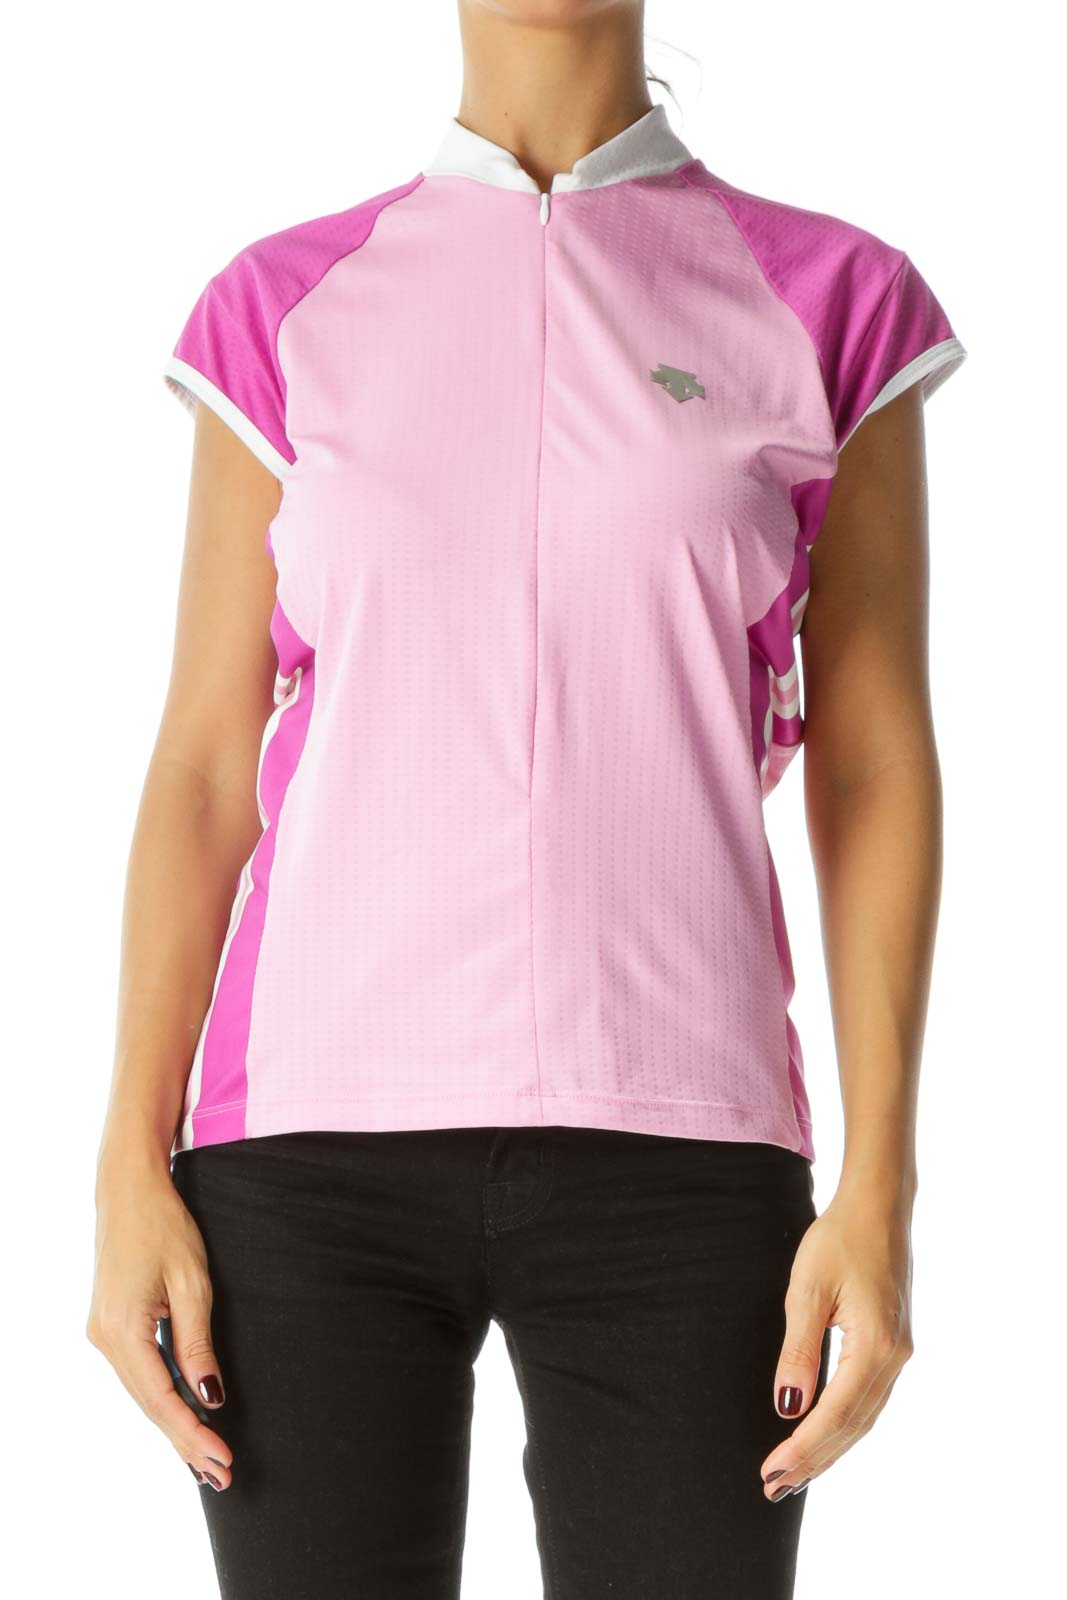 Pink Purple White Zippered Short Sleeve Reflective Logo Applique Sports Top